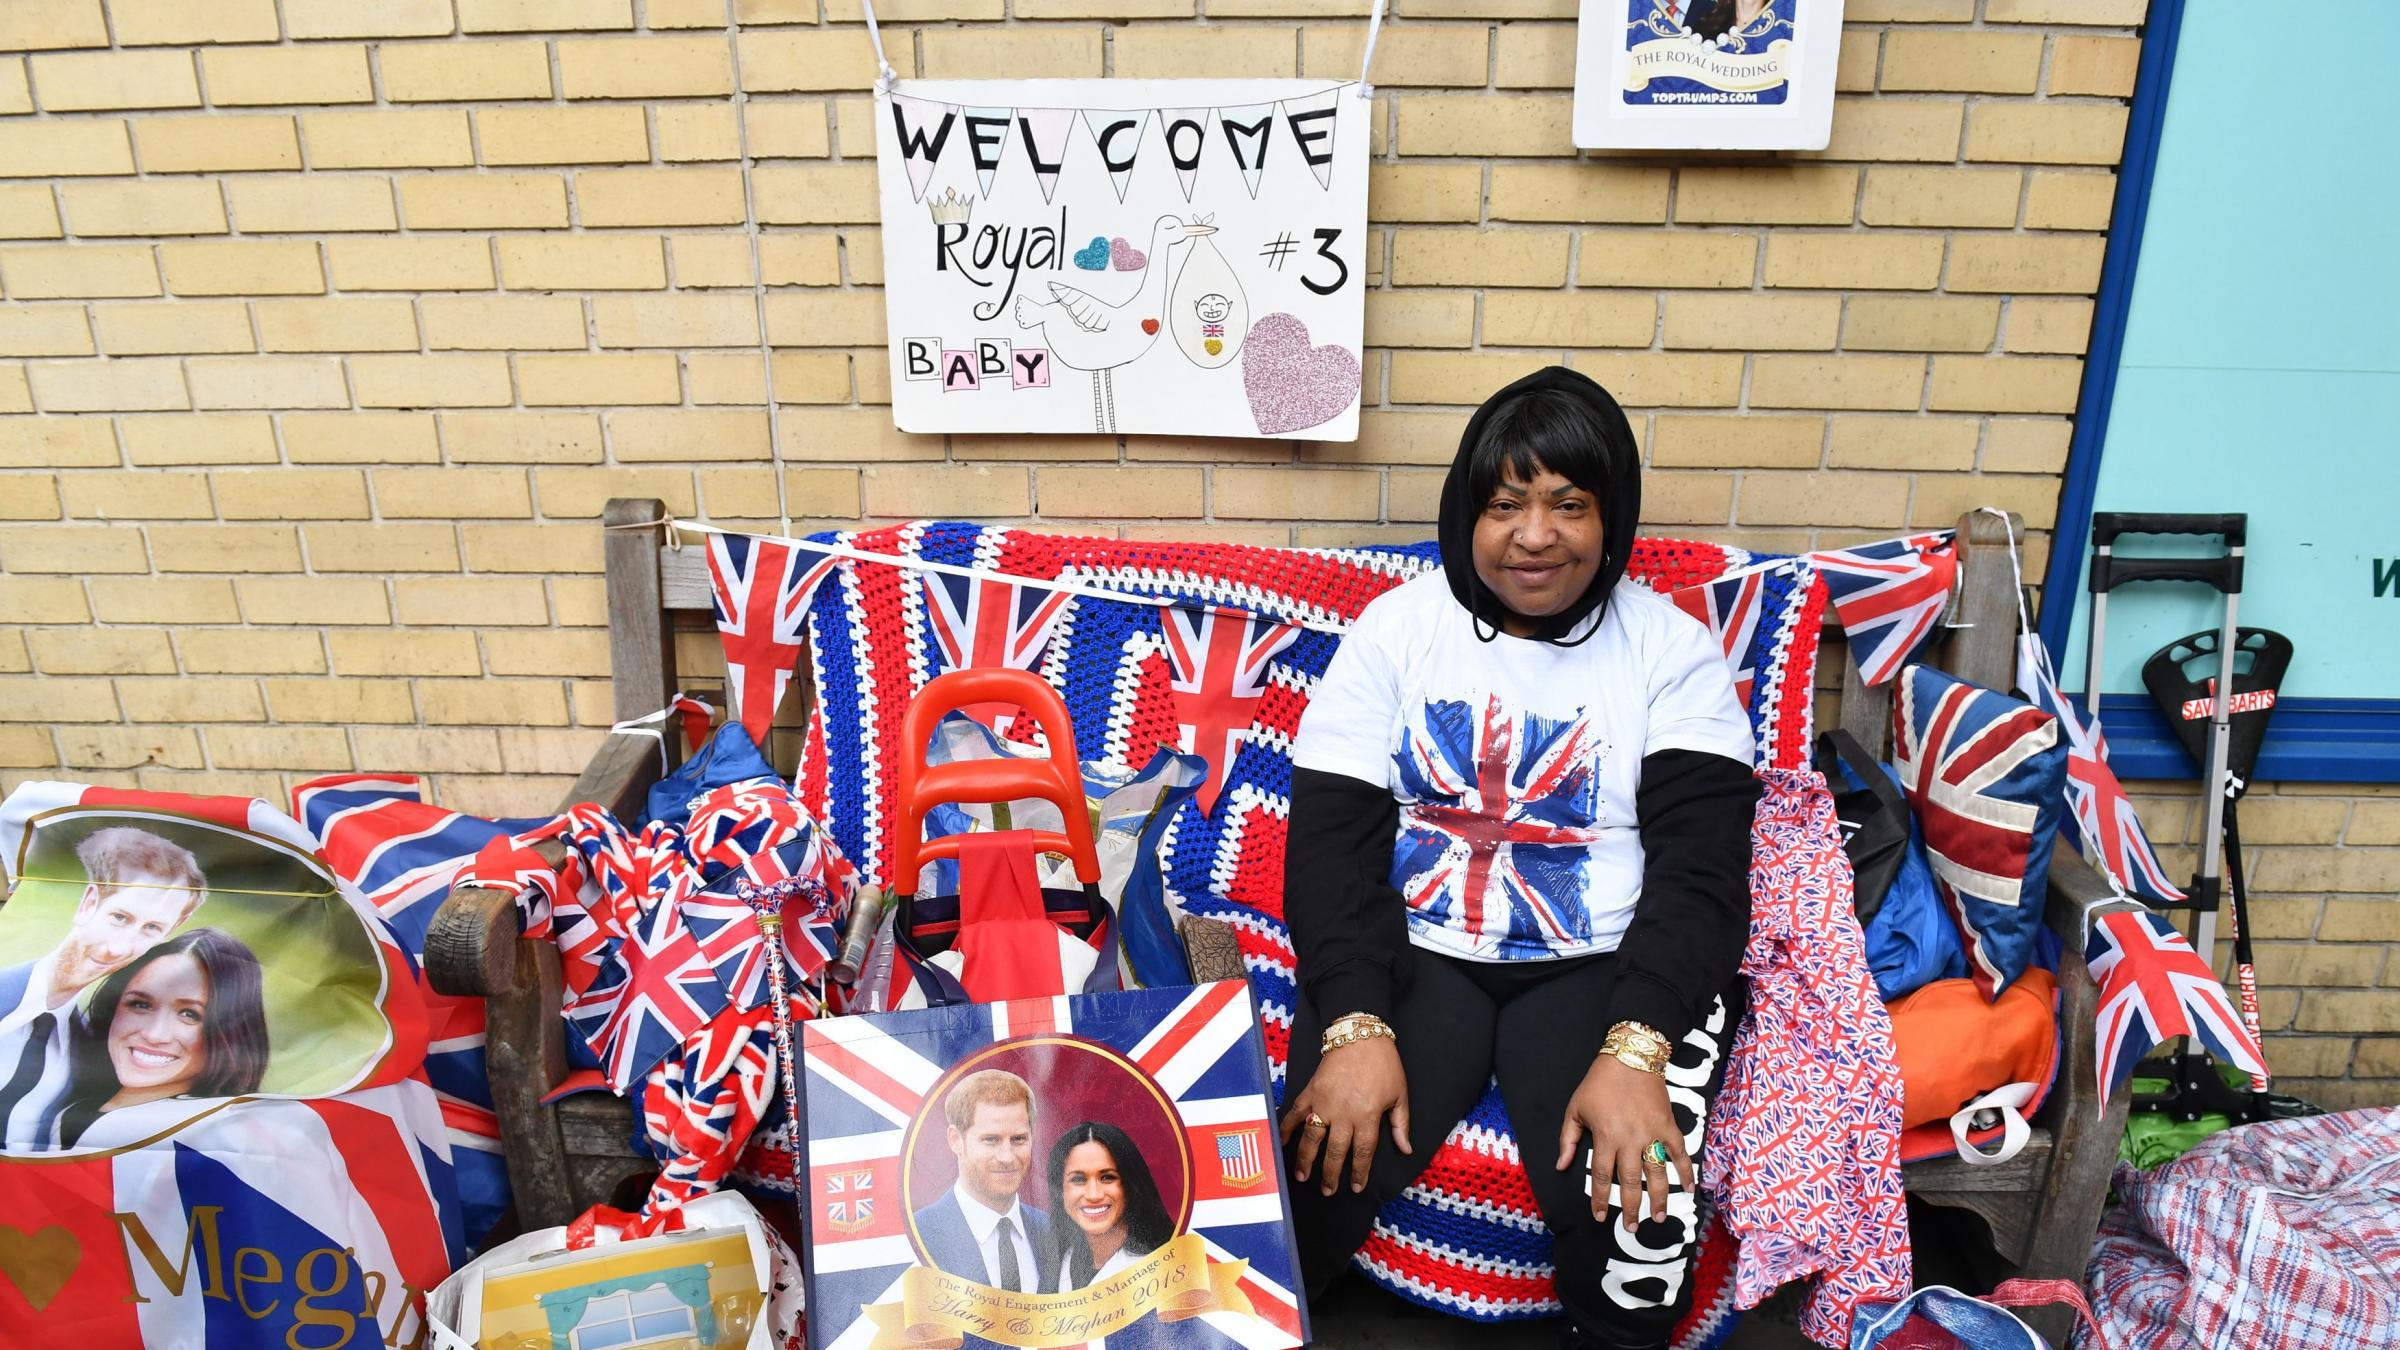 In Pictures: Excitement builds ahead of royal baby's birth